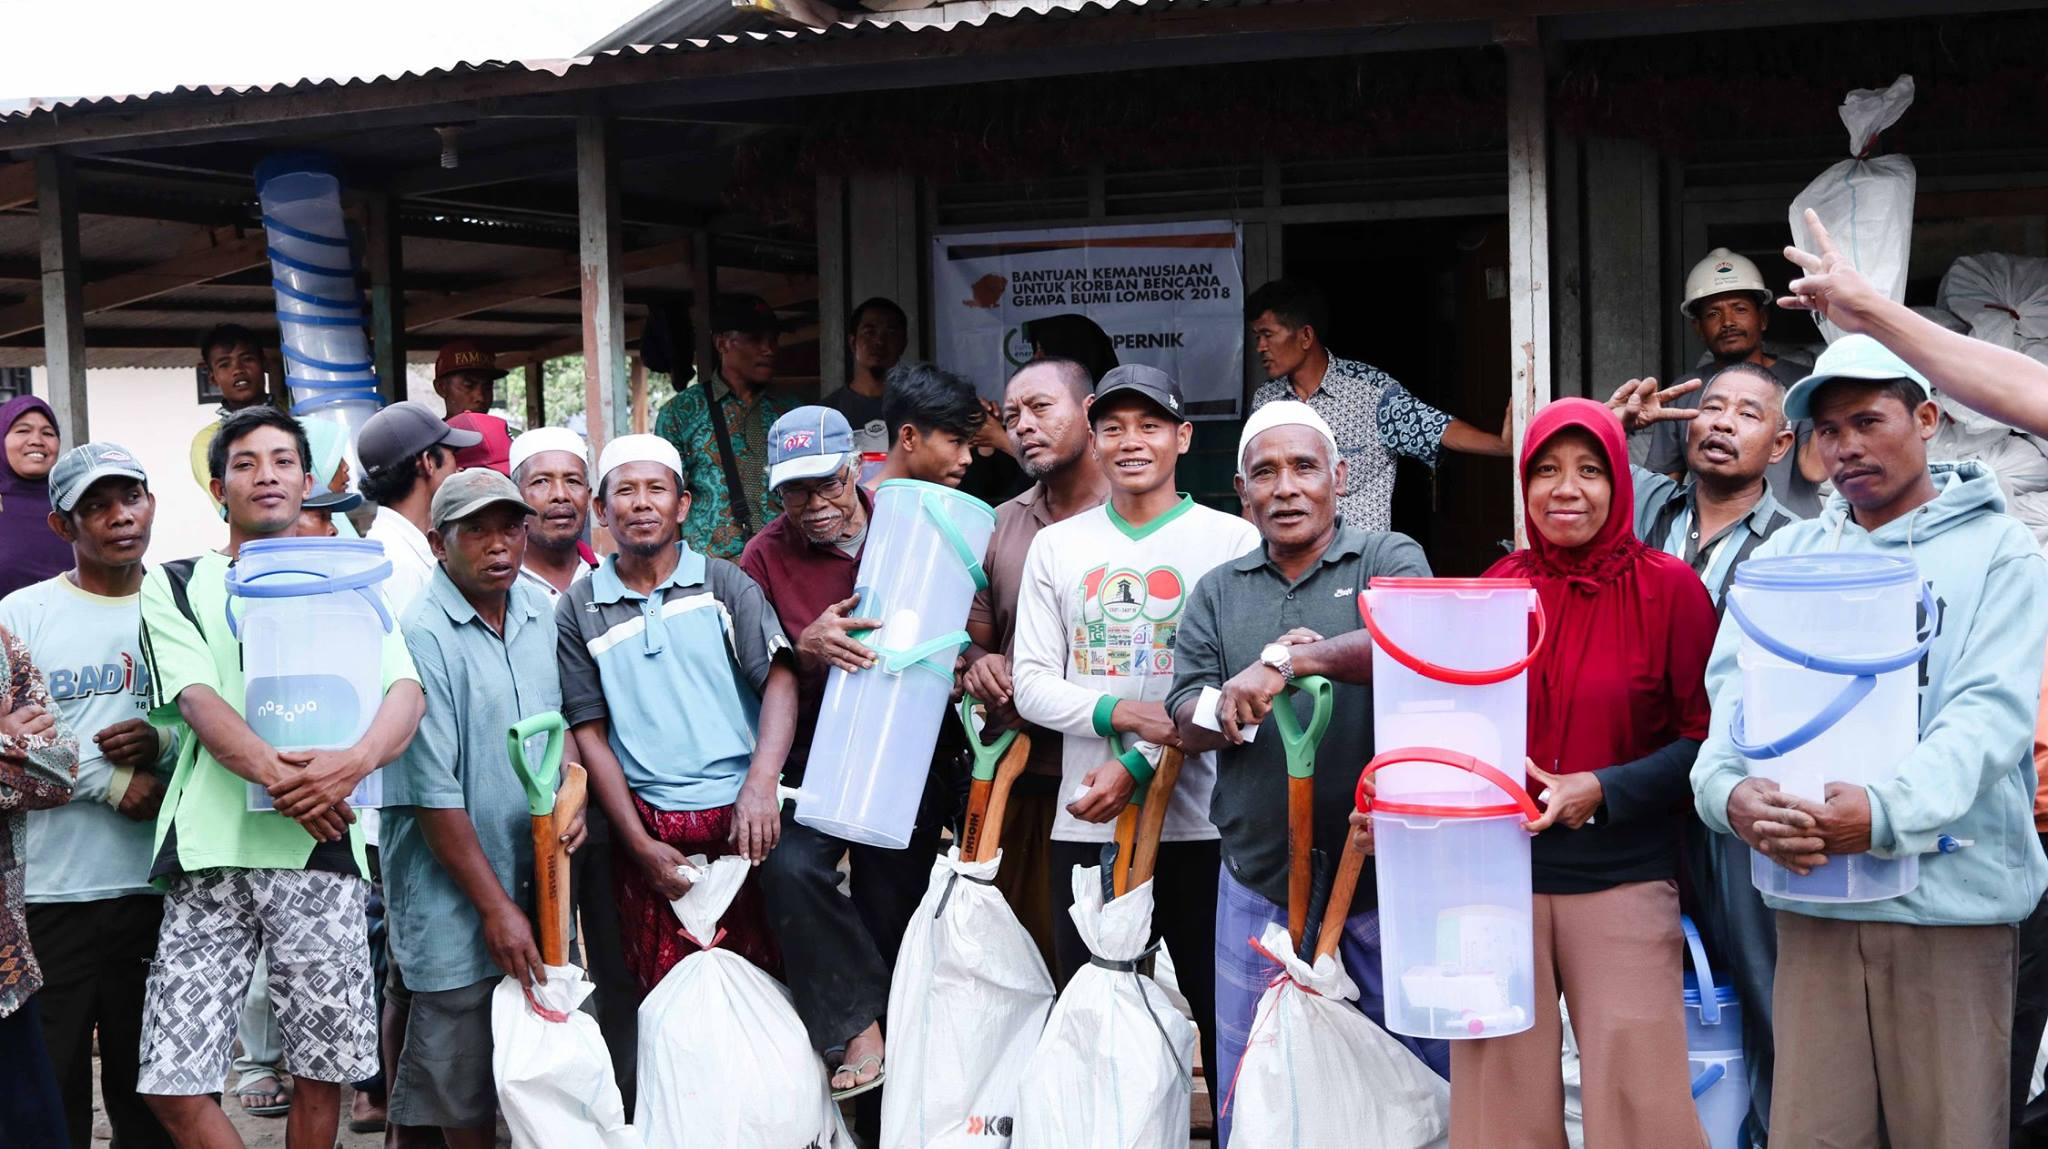 A Kopernik Thank You to All Supporters of the Lombok Emergency Response